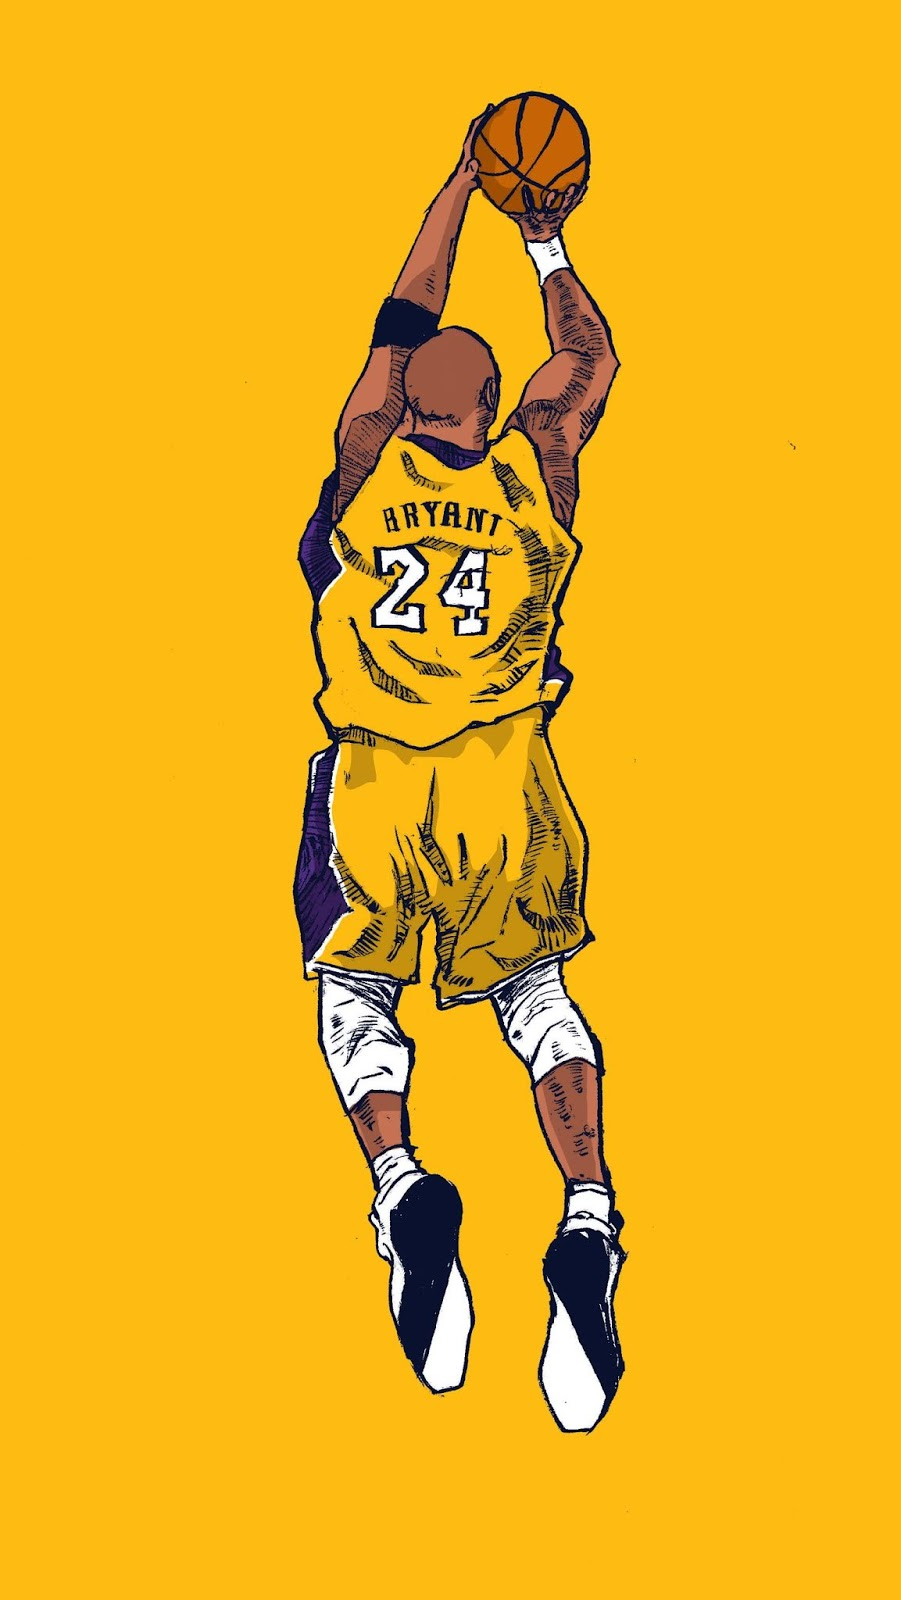 Kobe Bryant Cool Wallpapers For Phone Heroscreen